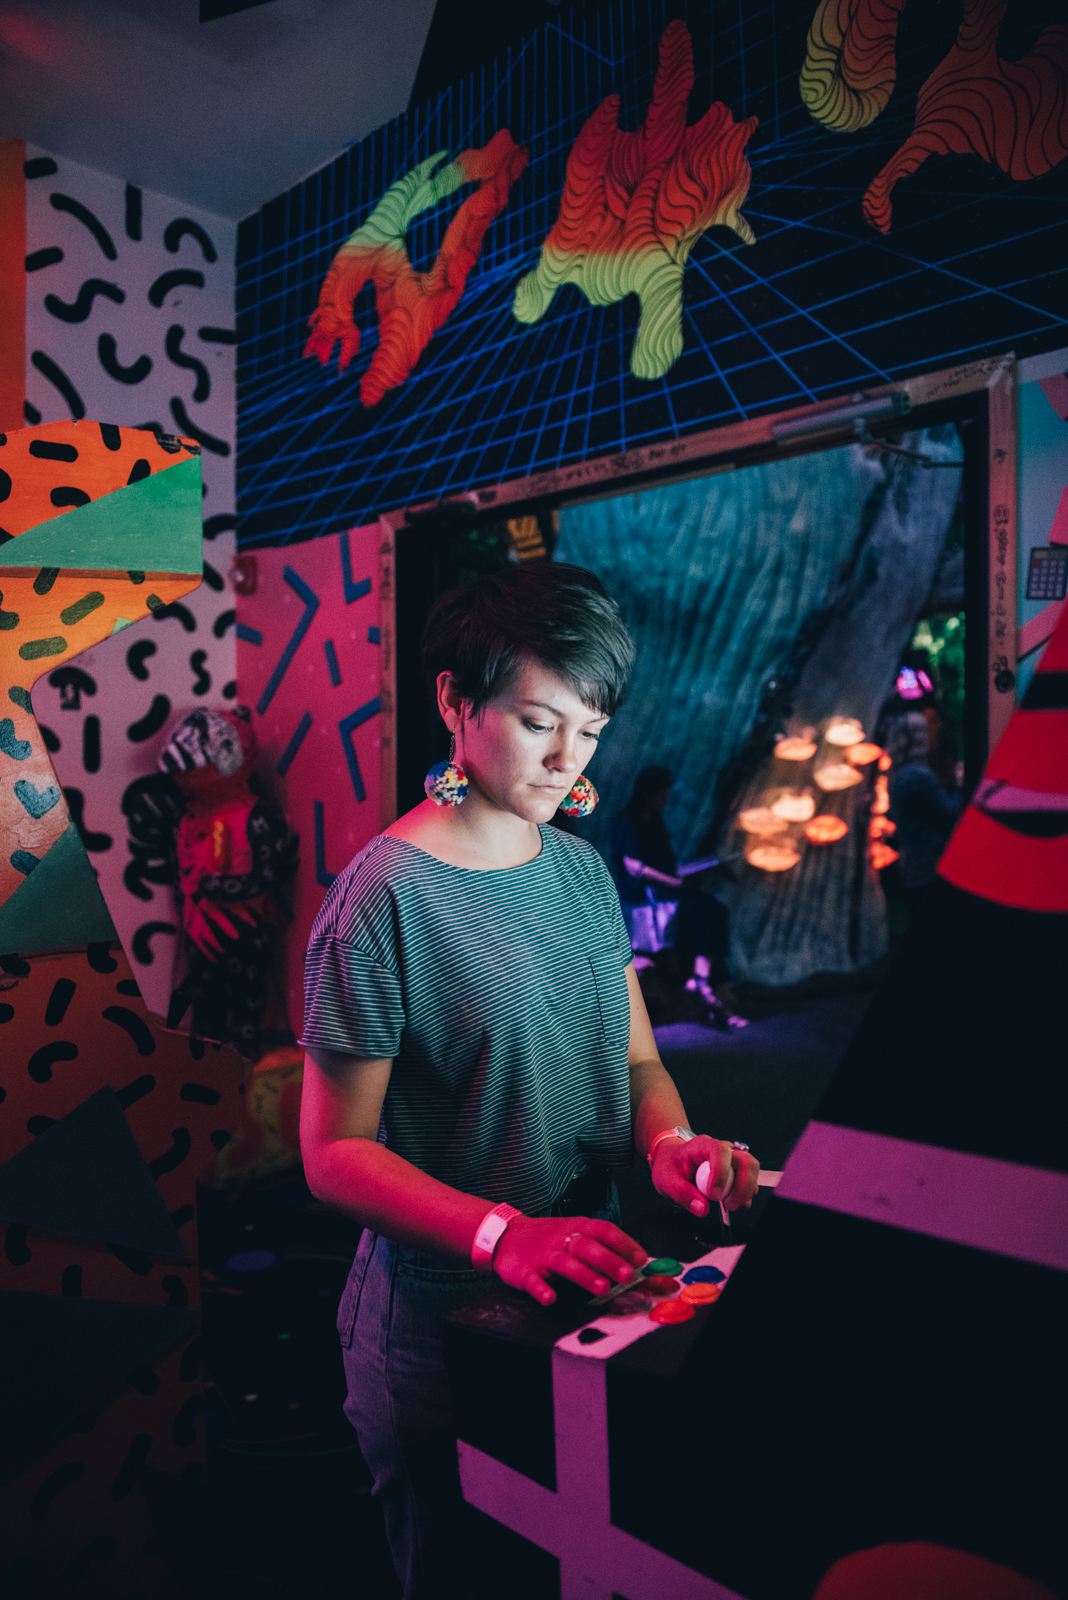 Diet Cig - Meow Wolf